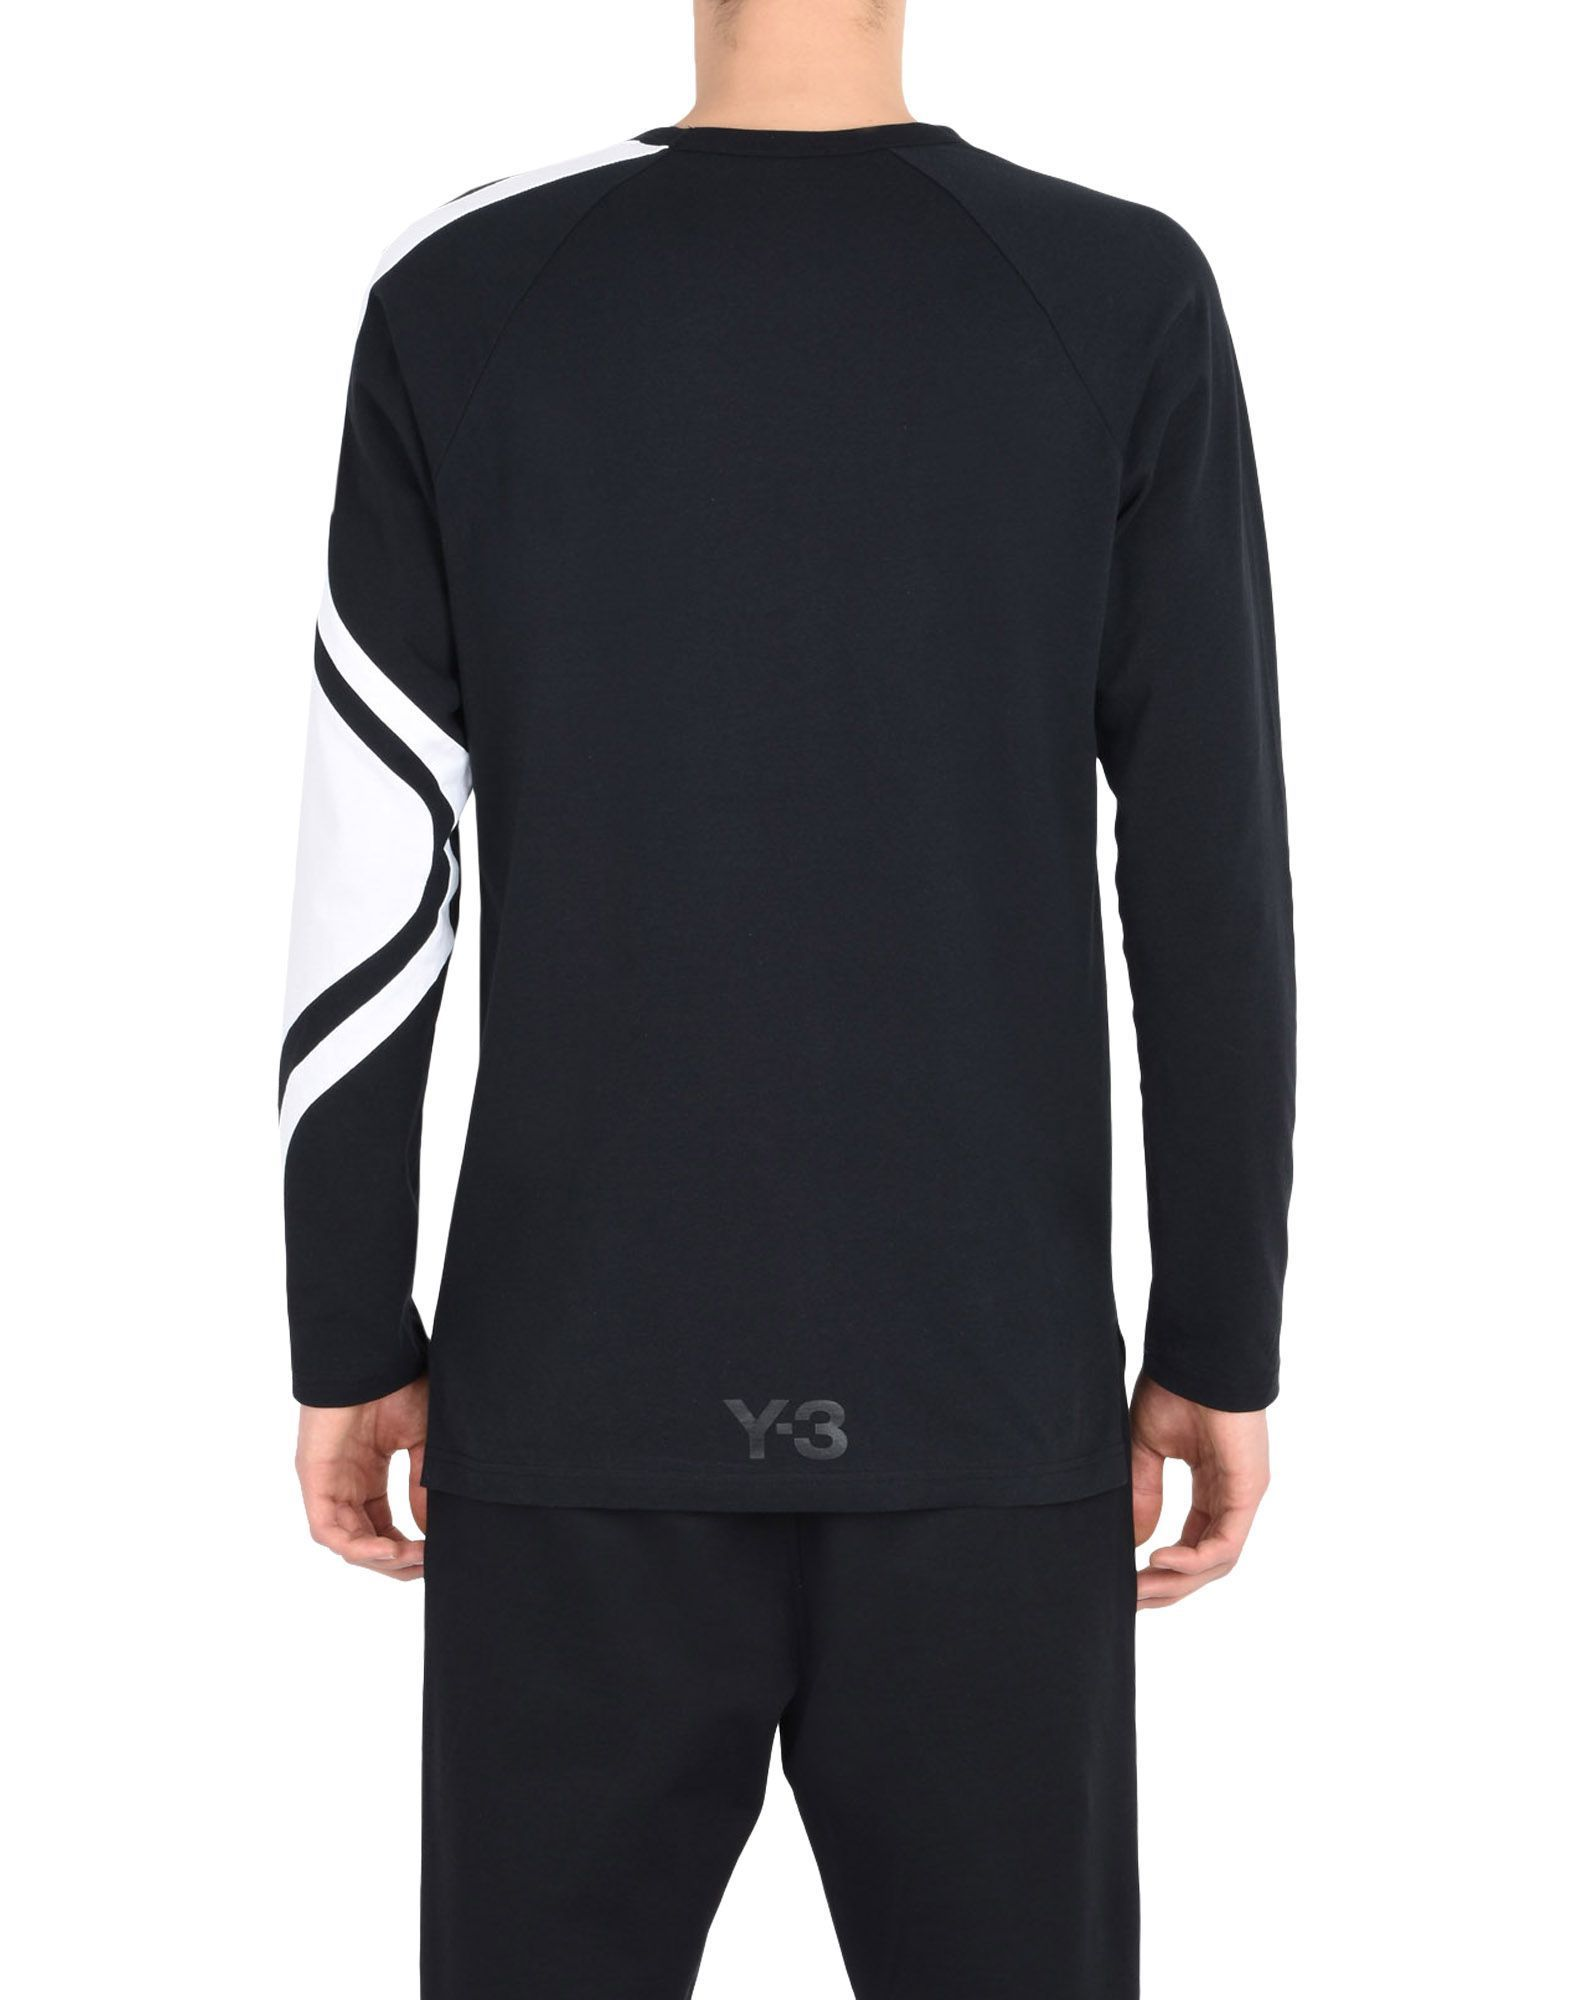 【関税込】 Y-3 3-STRIPES LS TEE